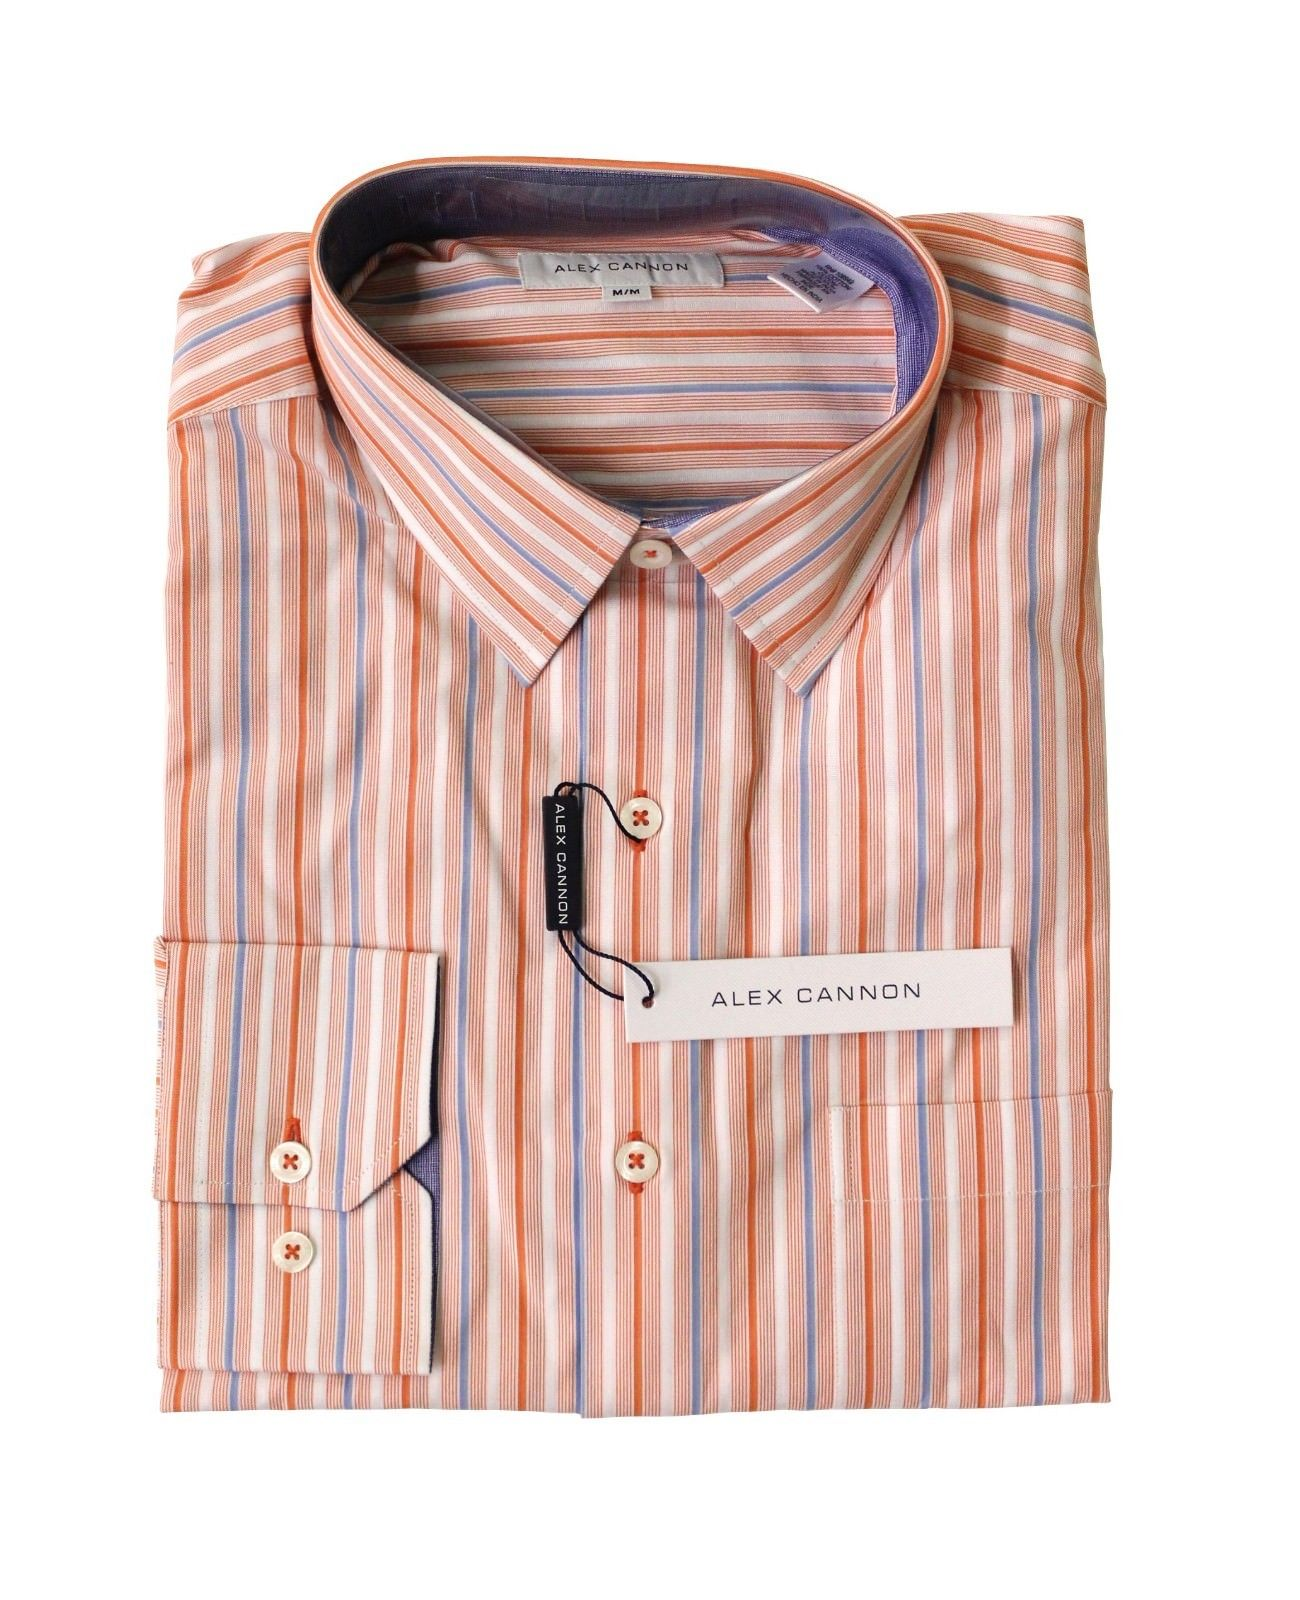 Alex Cannon Men's Dress Shirt, Orange Stripes, NWT